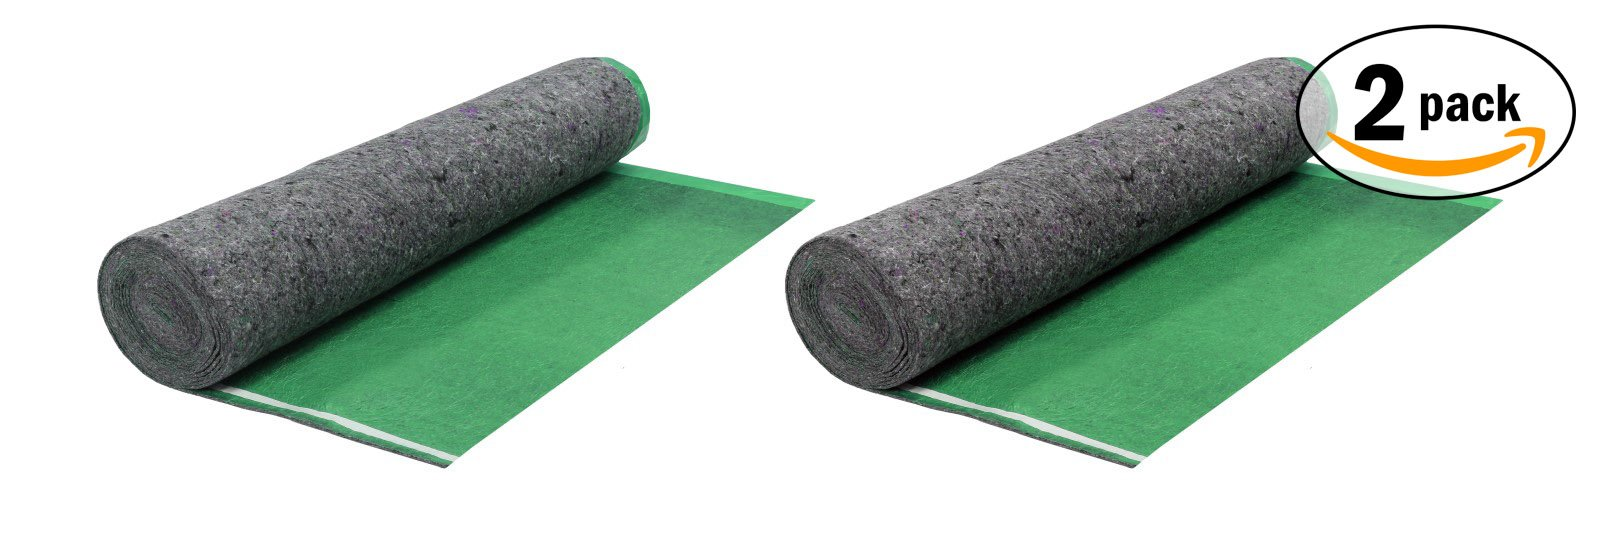 200SQFT 3.5MM AMERIQUE Super Quiet Walk Felt Underlayment Heavy Duty Padding with Vapor Barrier & Tape, Perfect for Hardwood, Bamboo, Floating Floors & Laminate, Bright Green, Pack of 2 by AMERIQUE (Image #5)